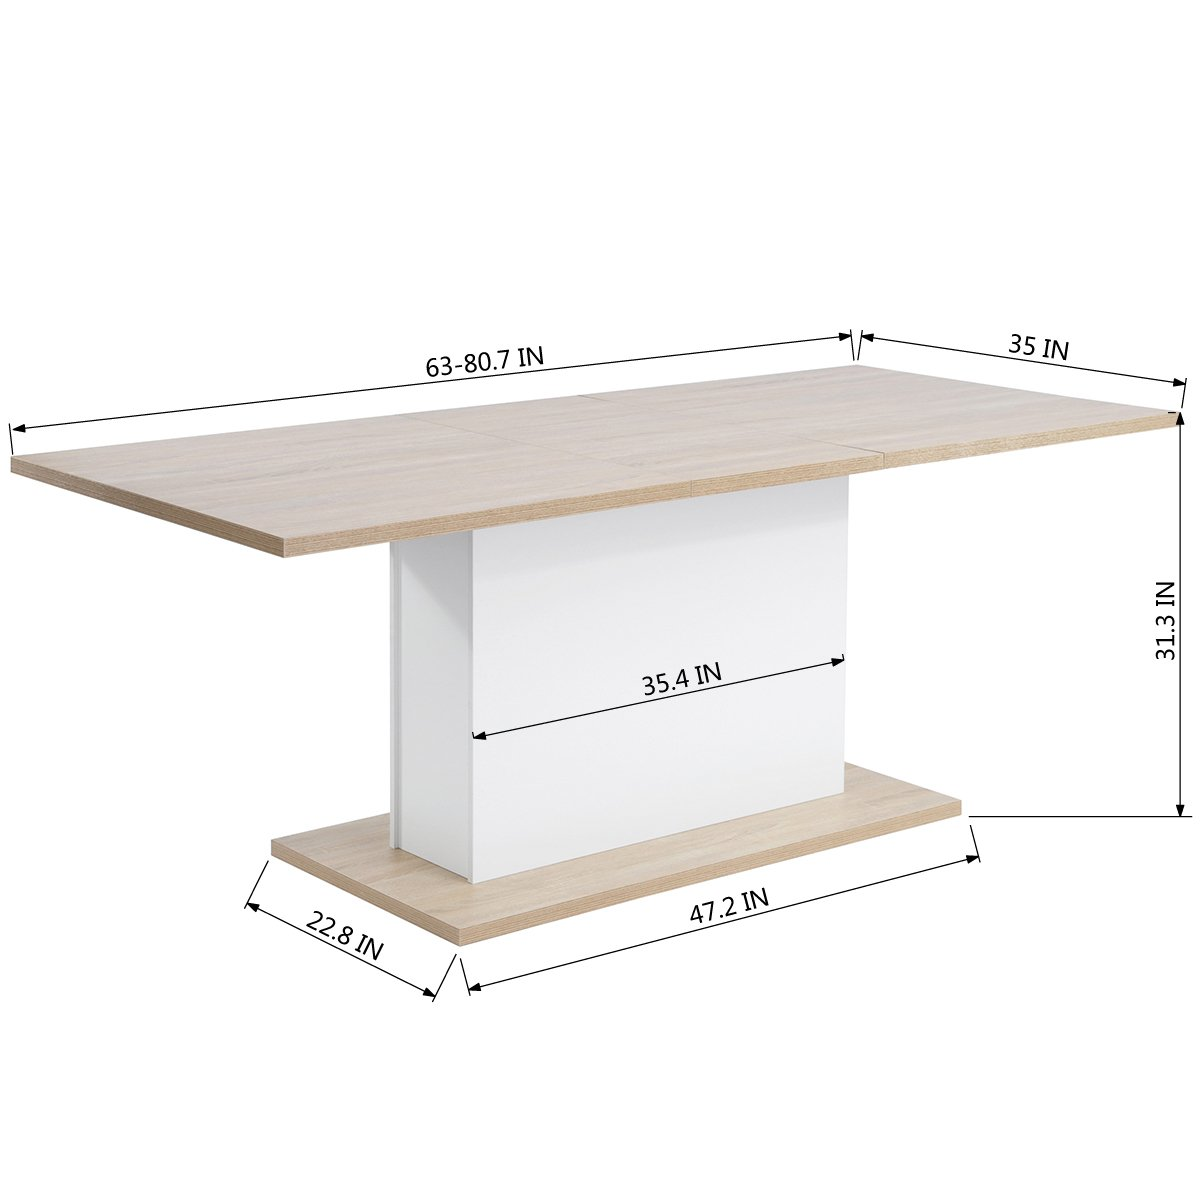 Extendable Rectangular Dining Table, Mltifunction Space Saving Wood Table (Extendable Beech Table) by HOMY CASA (Image #5)